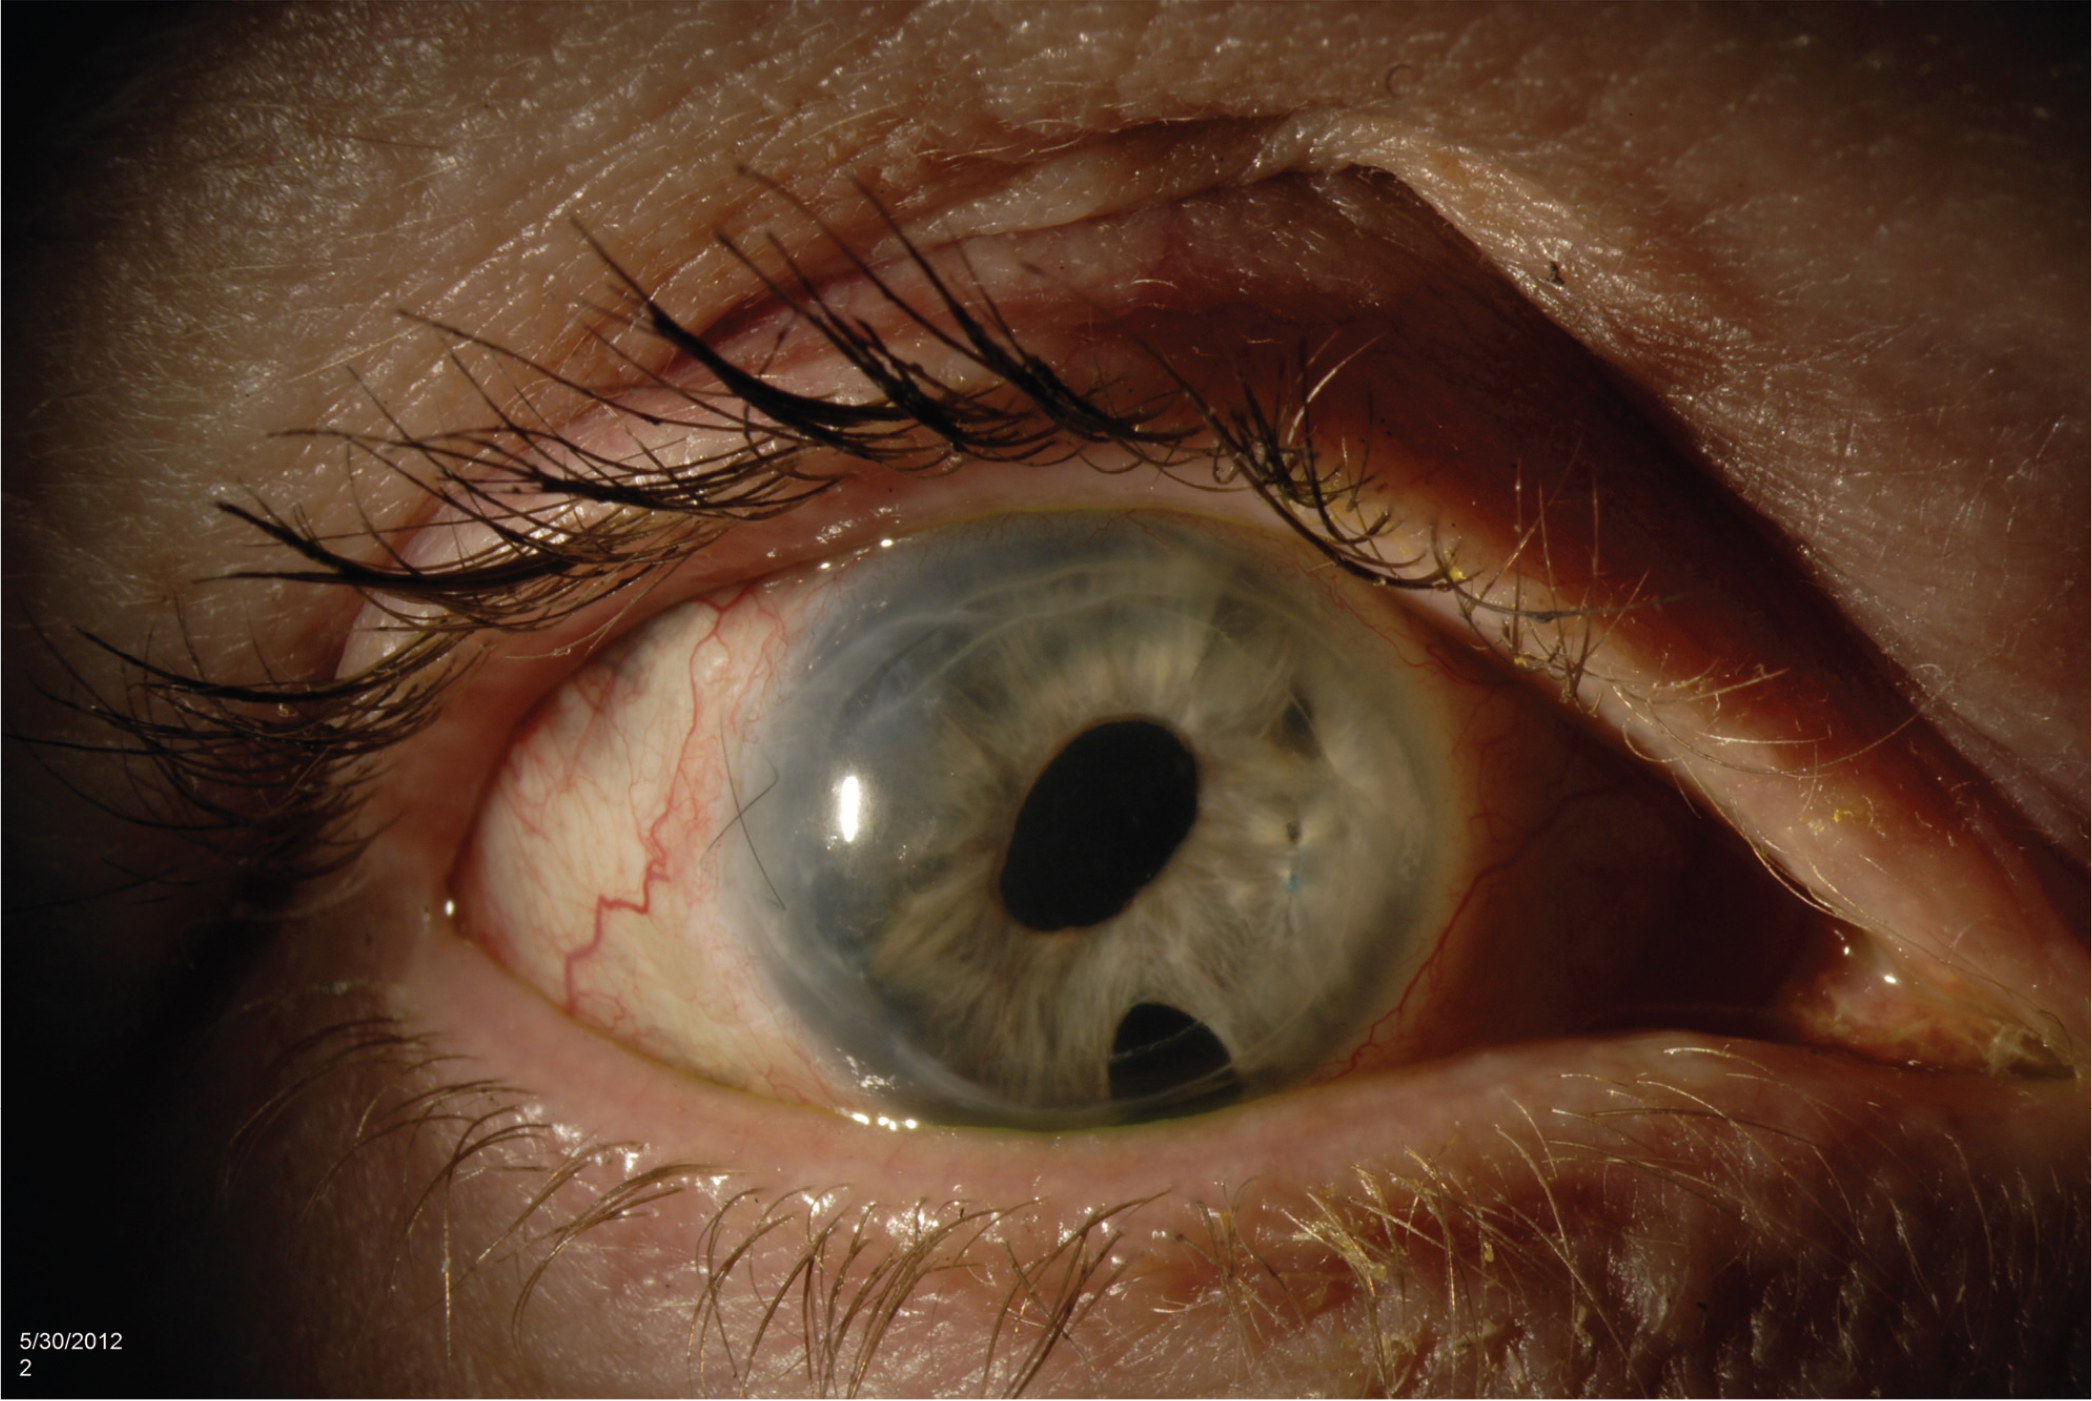 Postoperative photograph after removal of intravitreal dexamethasone implant. Note resolution of corneal edema. Intraocular pressure had returned to physiologic levels.